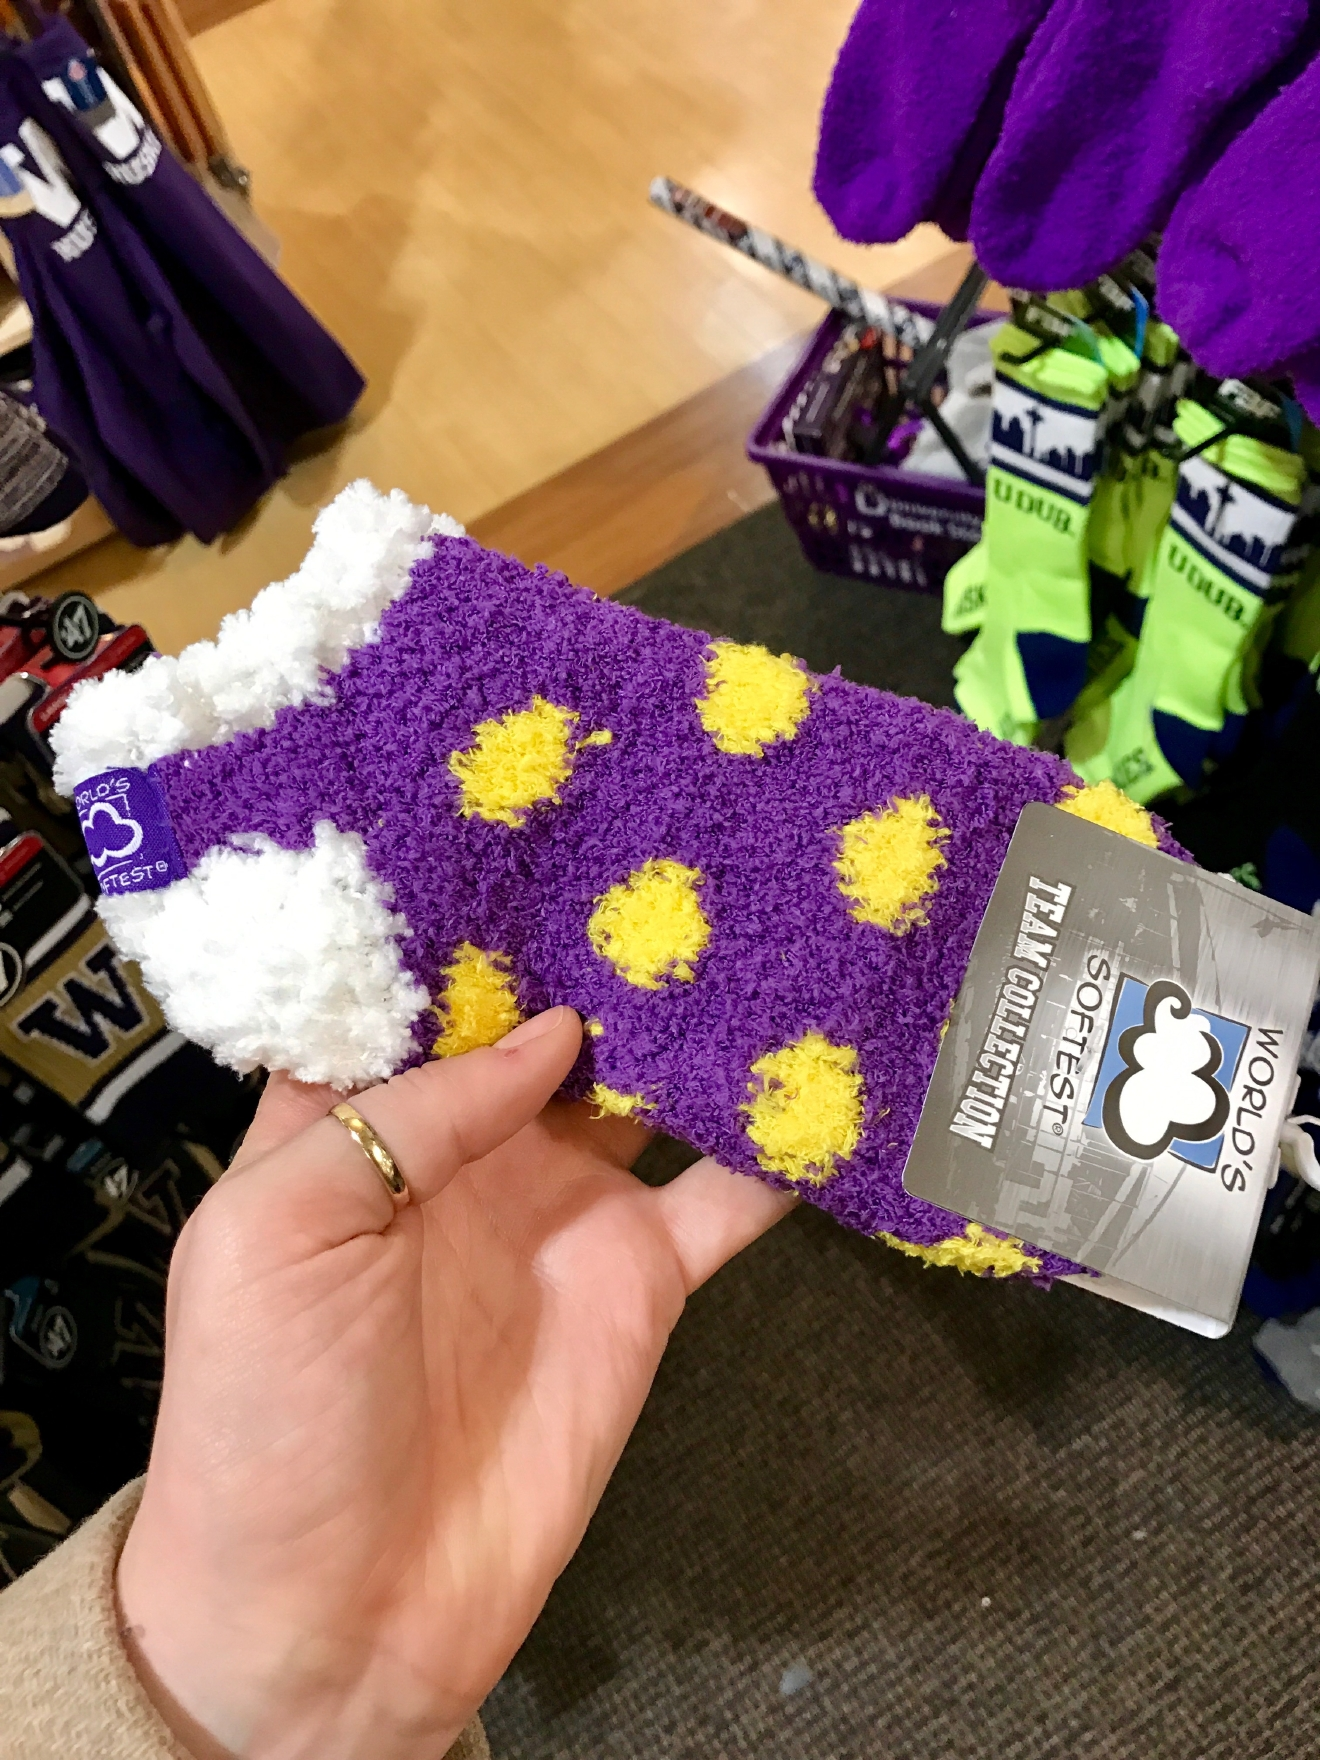 UW Fuzzy Socks - $8.95                                         Whether you're a current student, alum, or just *love* the Dawgs, it's a pretty exciting time to be a Husky fan right now. Just to catch you up, the University of Washington football team is having one of their best seasons in years, and will be playing the Peach Bowl in Atlanta on December 31st. If you know a Dawg fan, they're probably salivating at the mouth right about now. Which is why it's a perfect time to give them a themed gift! Here are some of the coolest Husky gear we saw at the University Bookstore on the Avenue during our last visit. Pro Tip: They're open 10 a.m. - 7 p.m. on Christmas Eve! (Image: Britt Thorson / Seattle Refined)